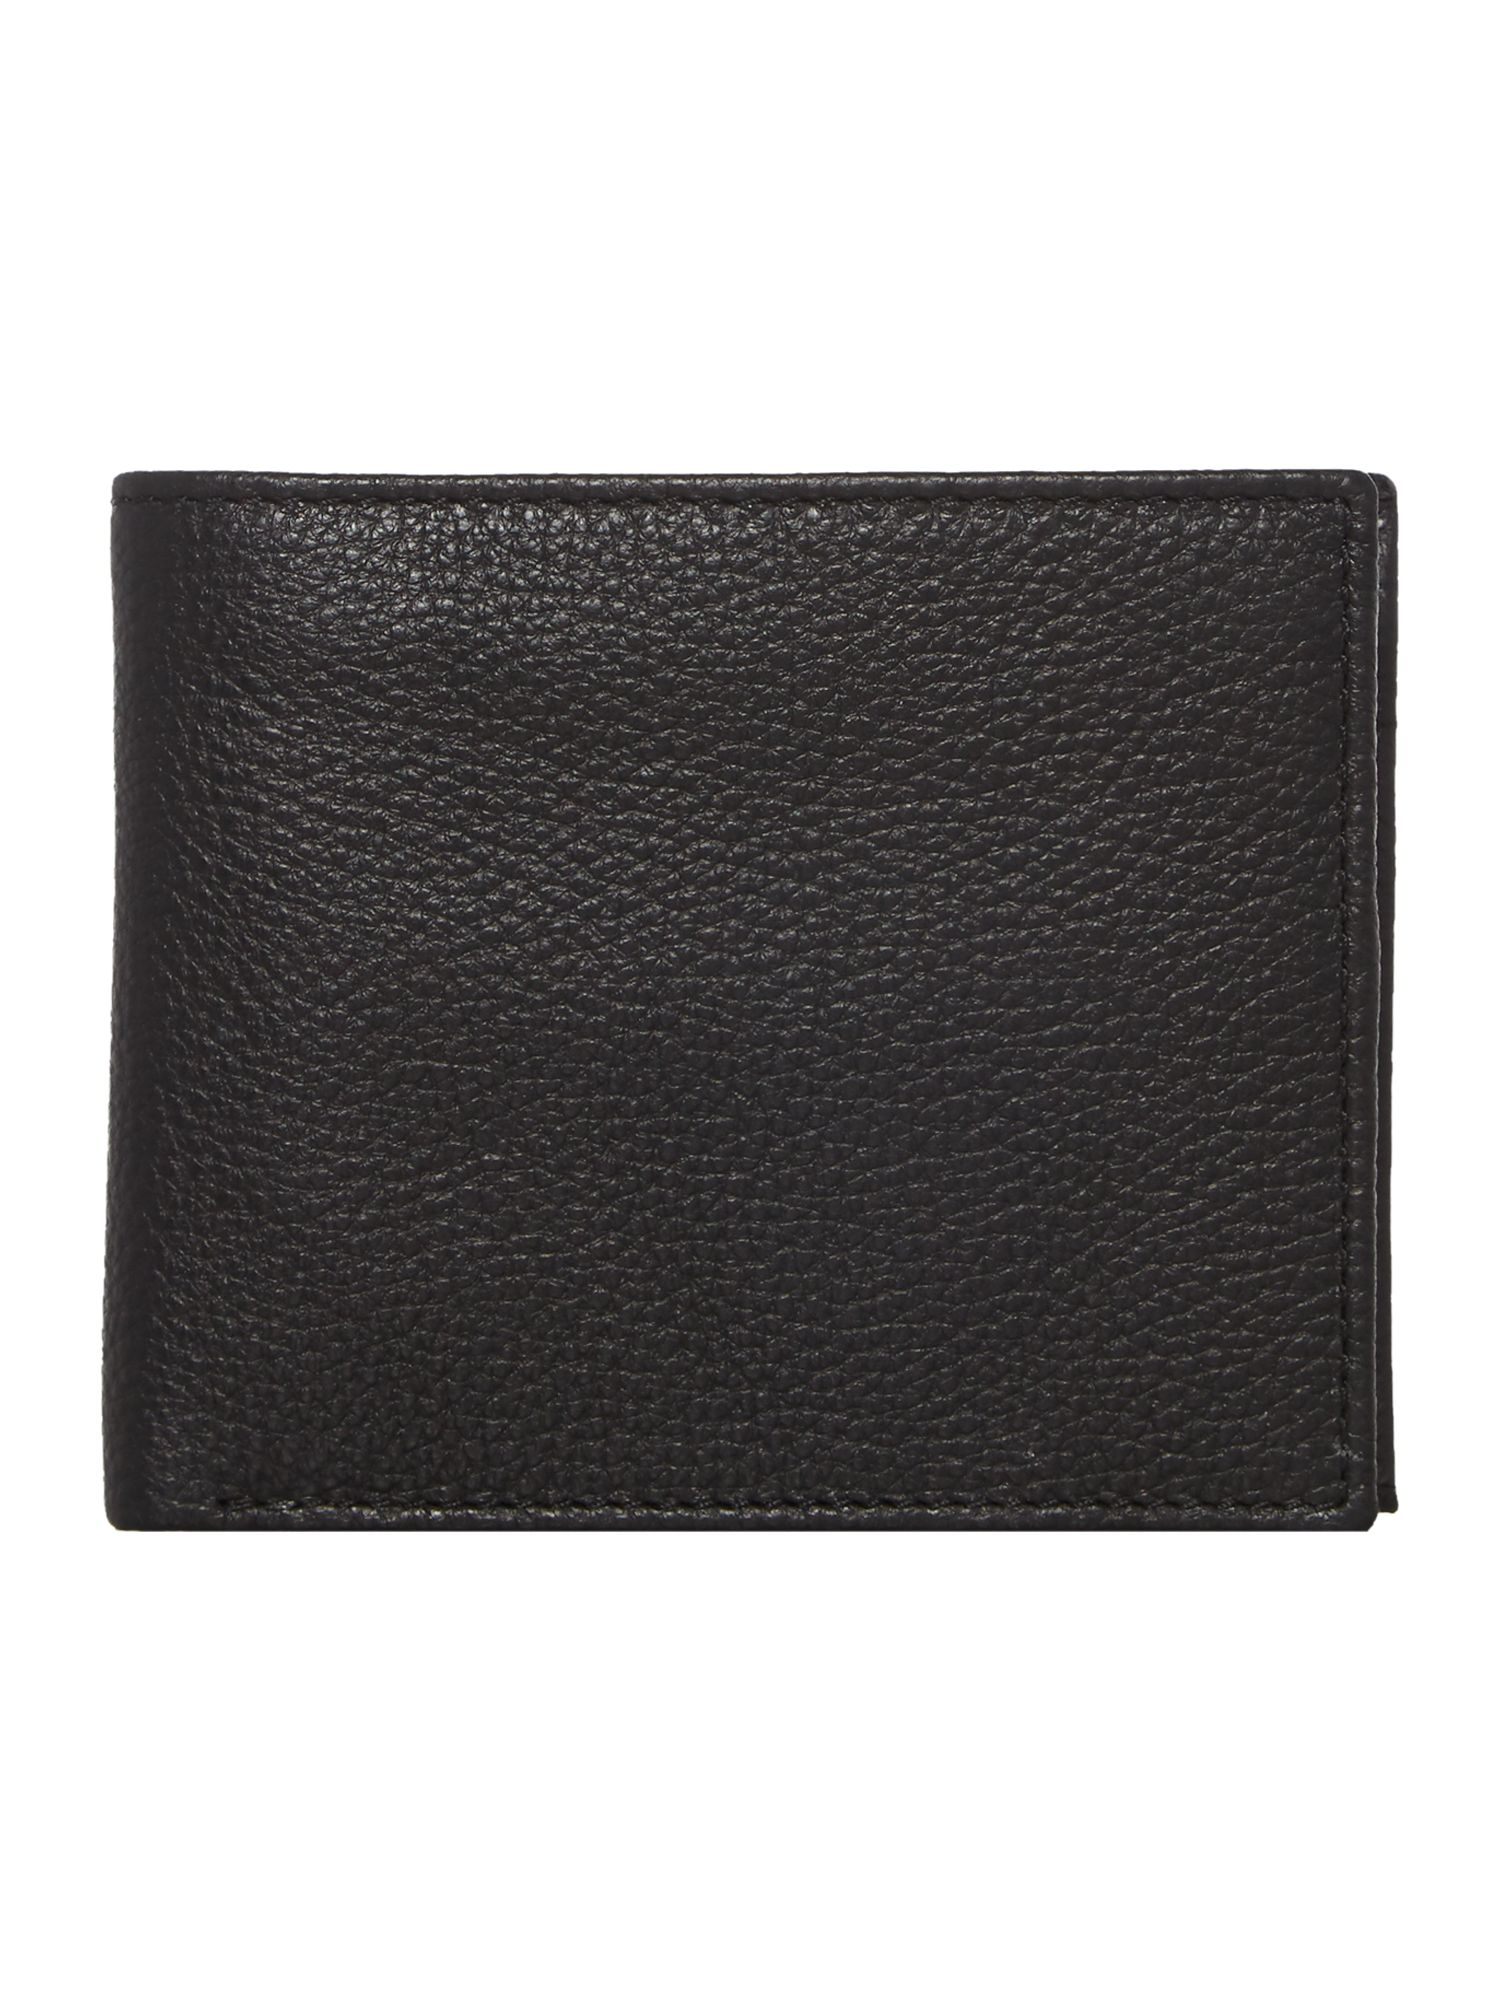 Howick Bold Grain Leather Wallet With Coin Pocket, Black